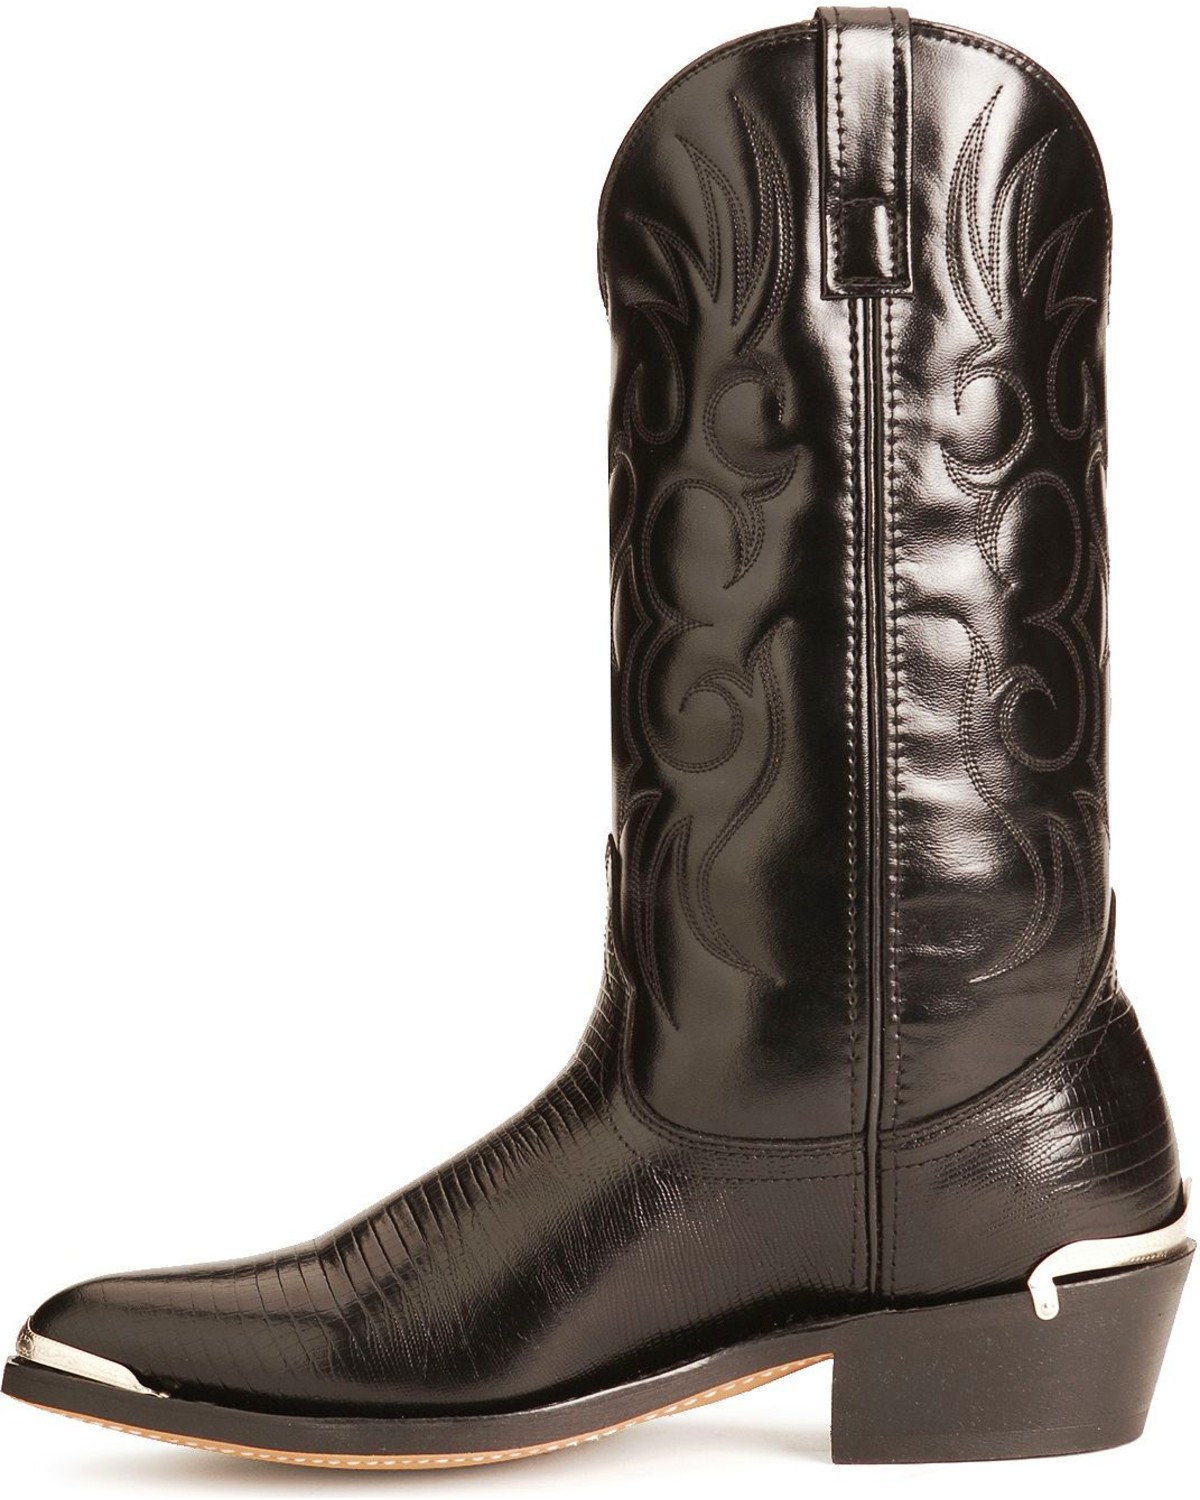 Laredo Lizard Print Cowboy Boots Pointed Toe Sheplers